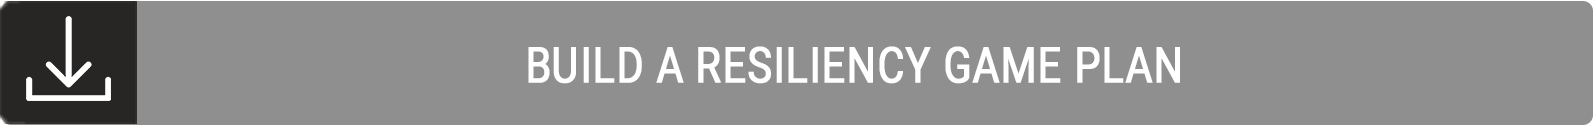 Build a resiliency game plan